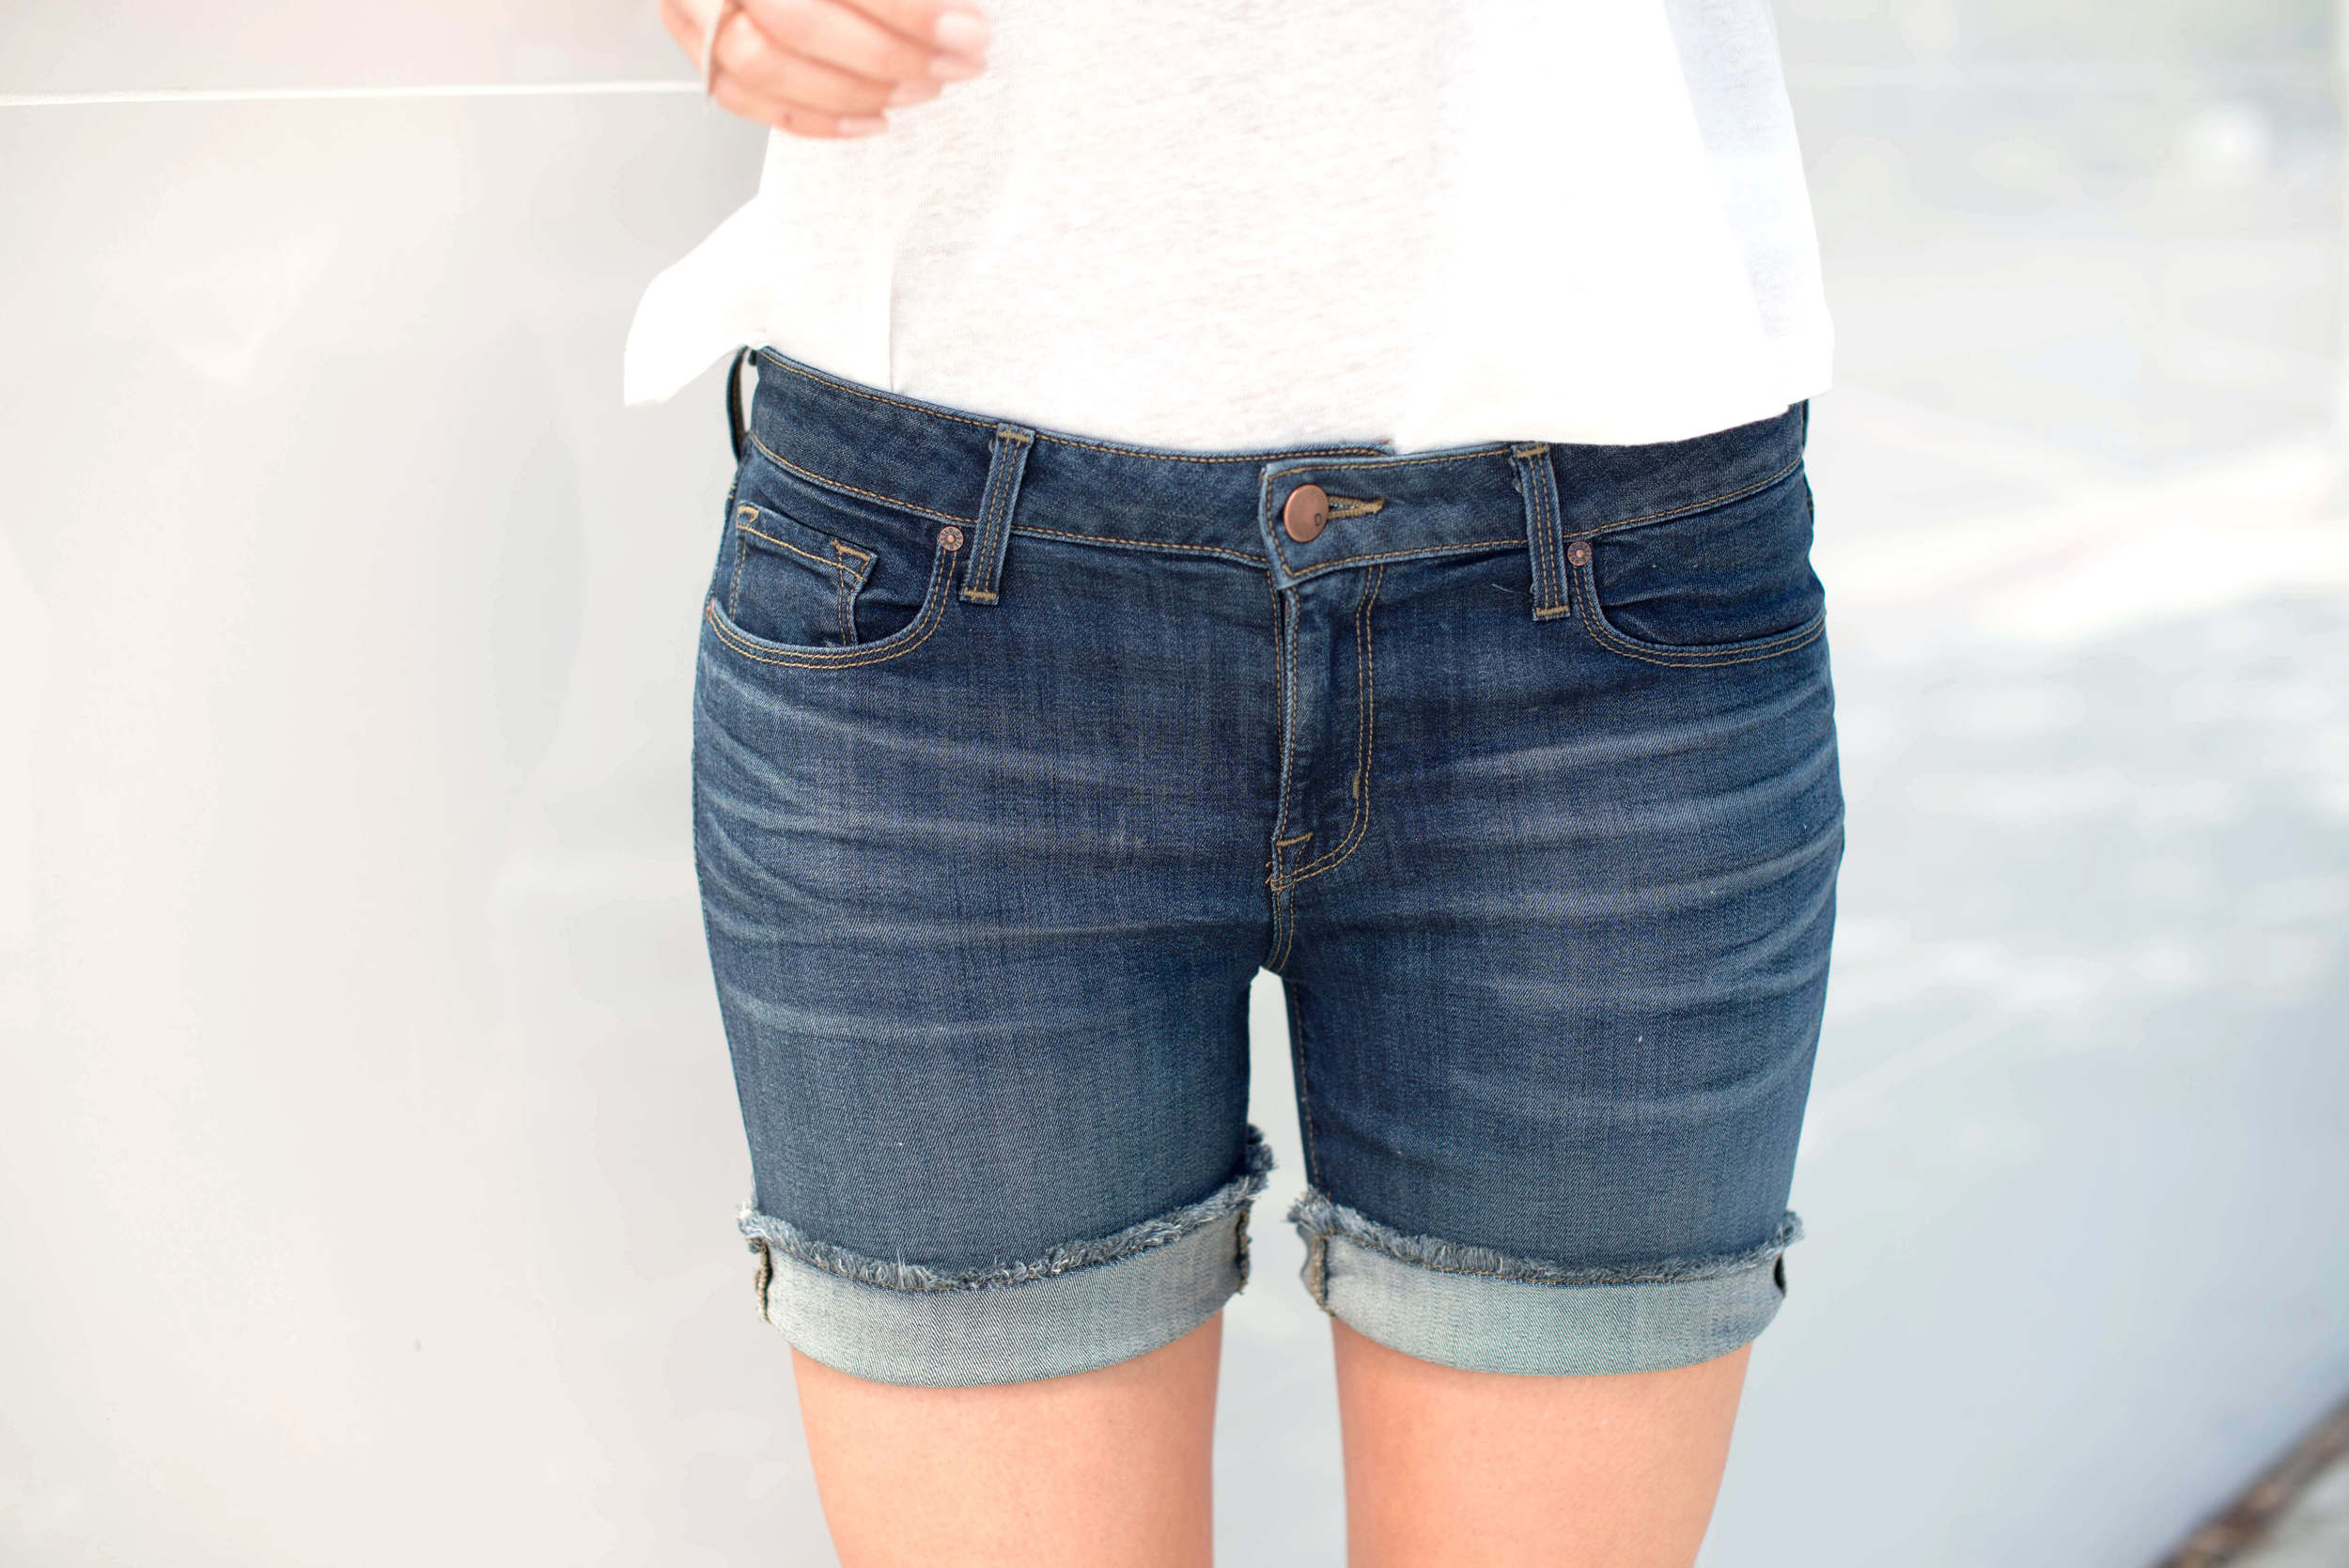 DSTLD mid rise roll-up shorts